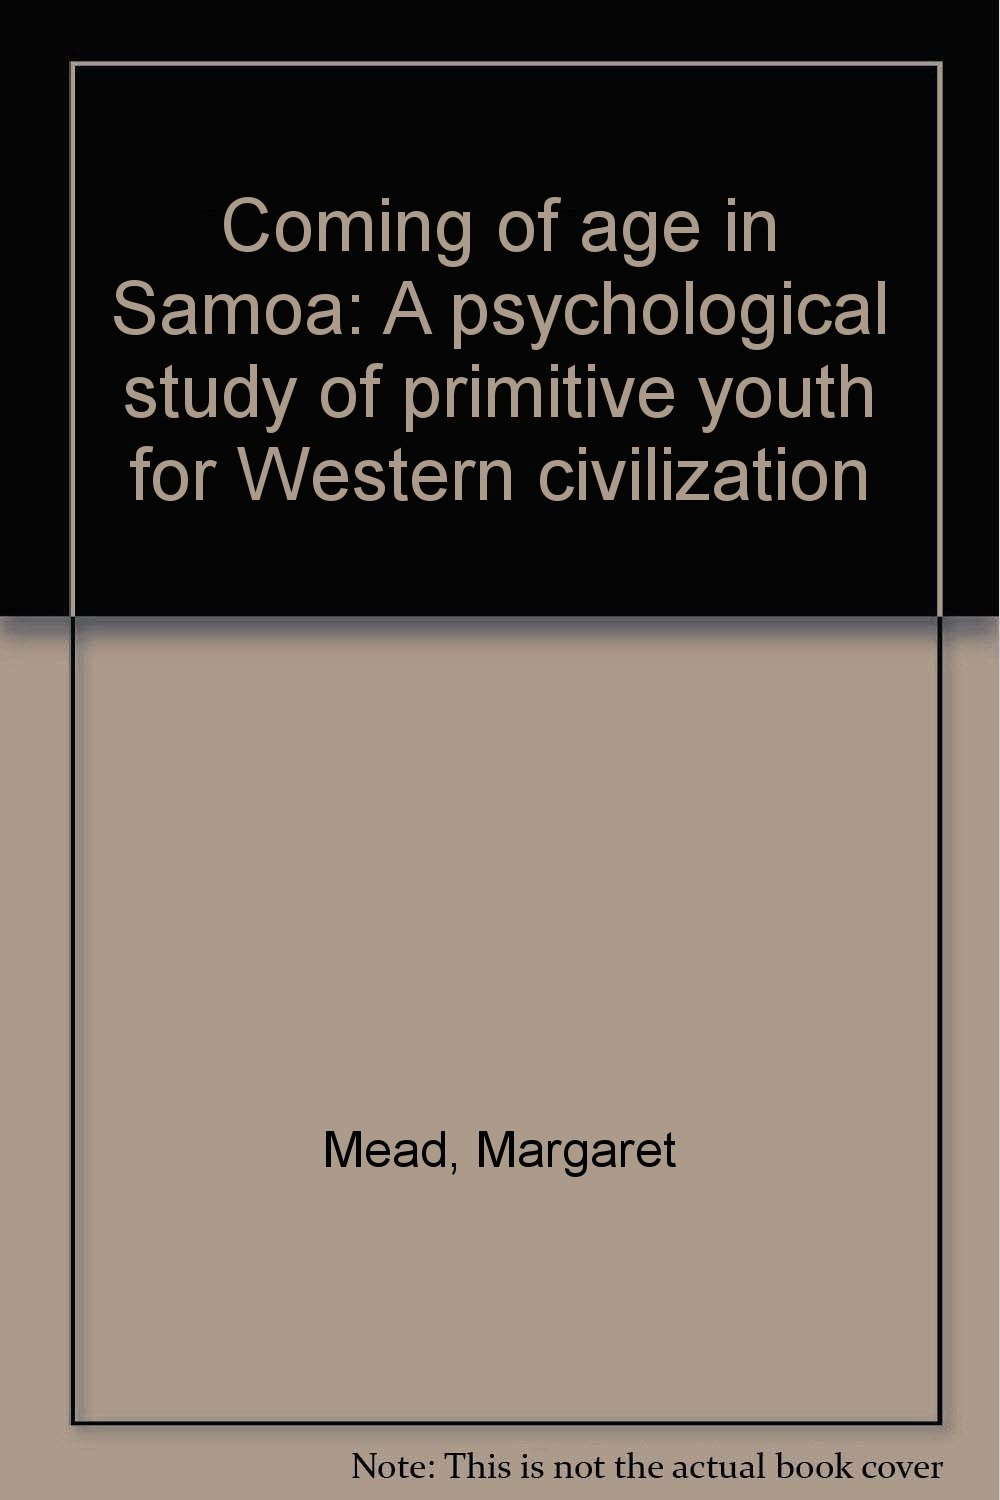 margaret mead coming of age in samoa